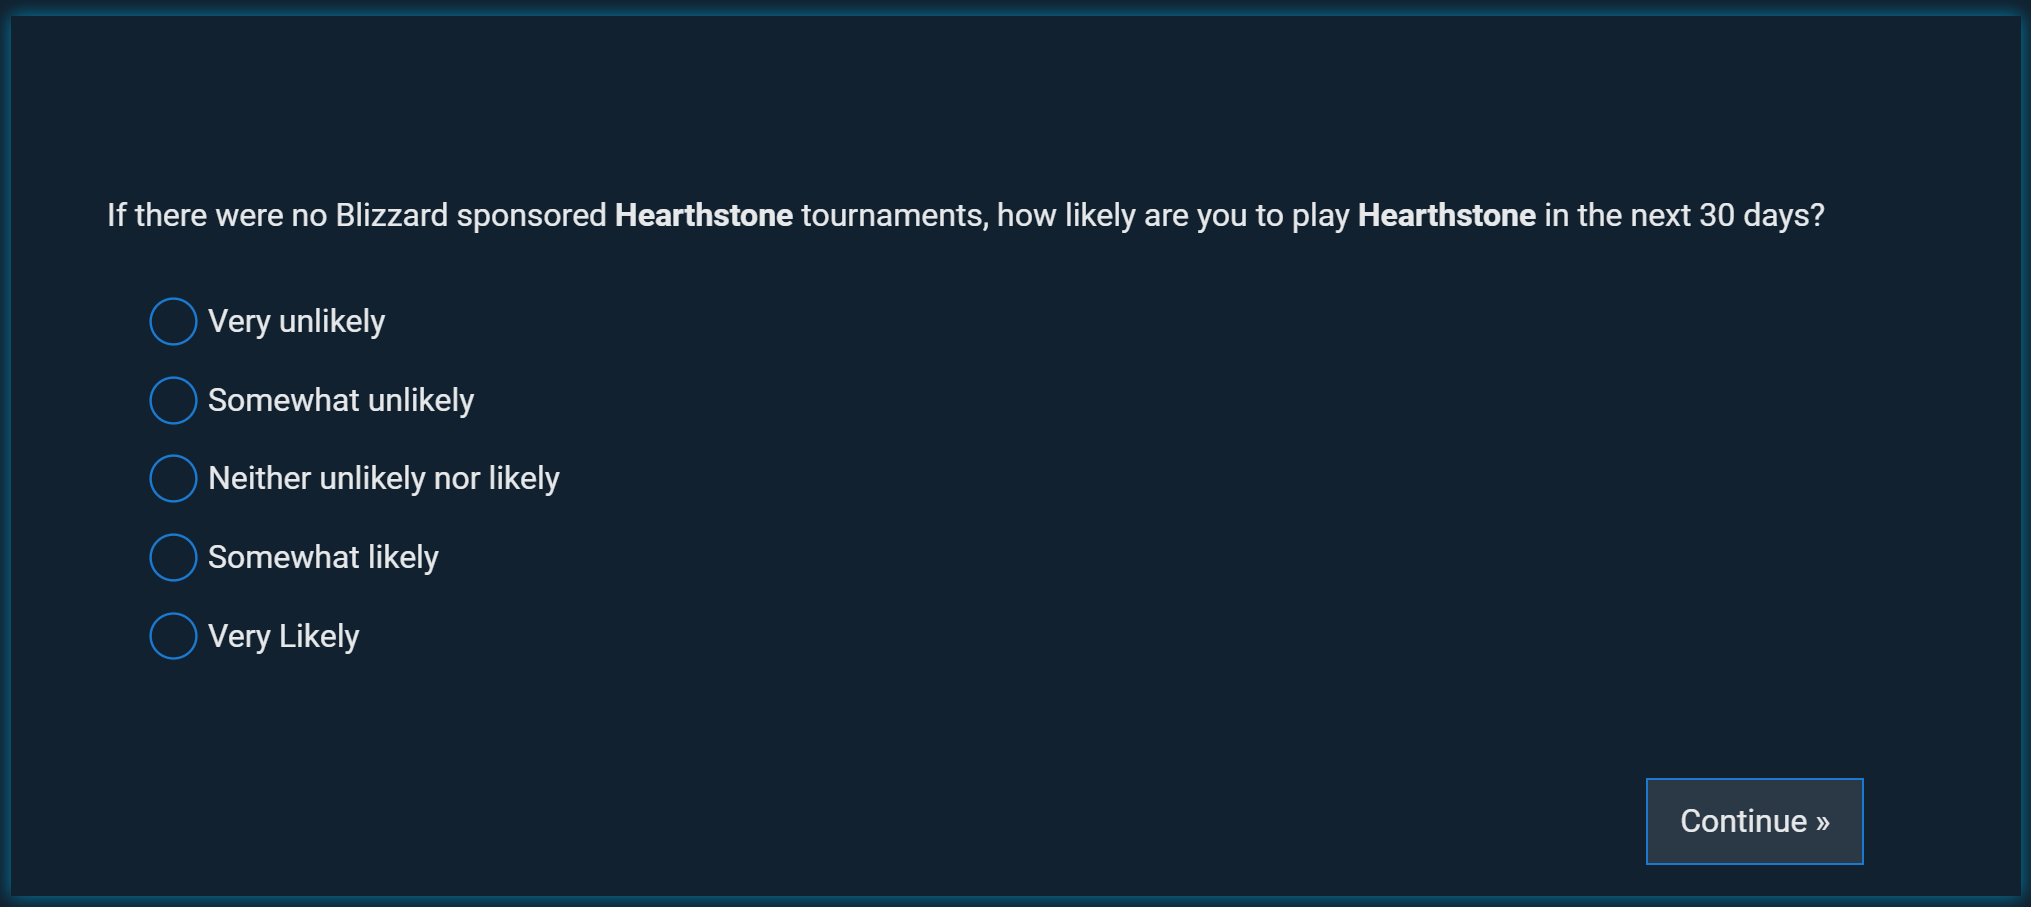 Hearthstone no torunament survey